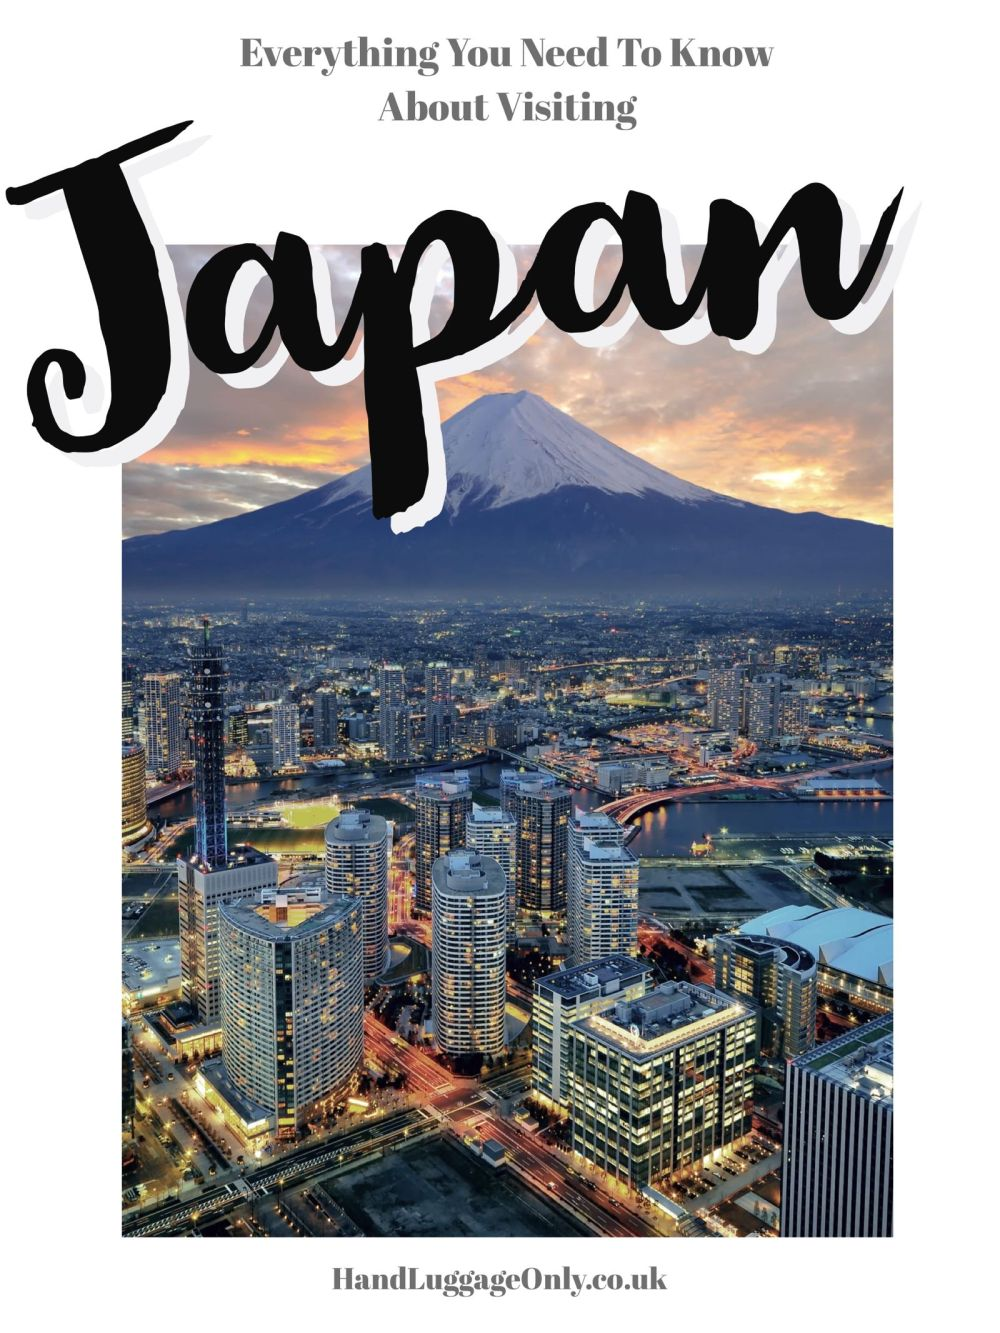 Your Complete Guide On Things To See And Do In Japan (2)